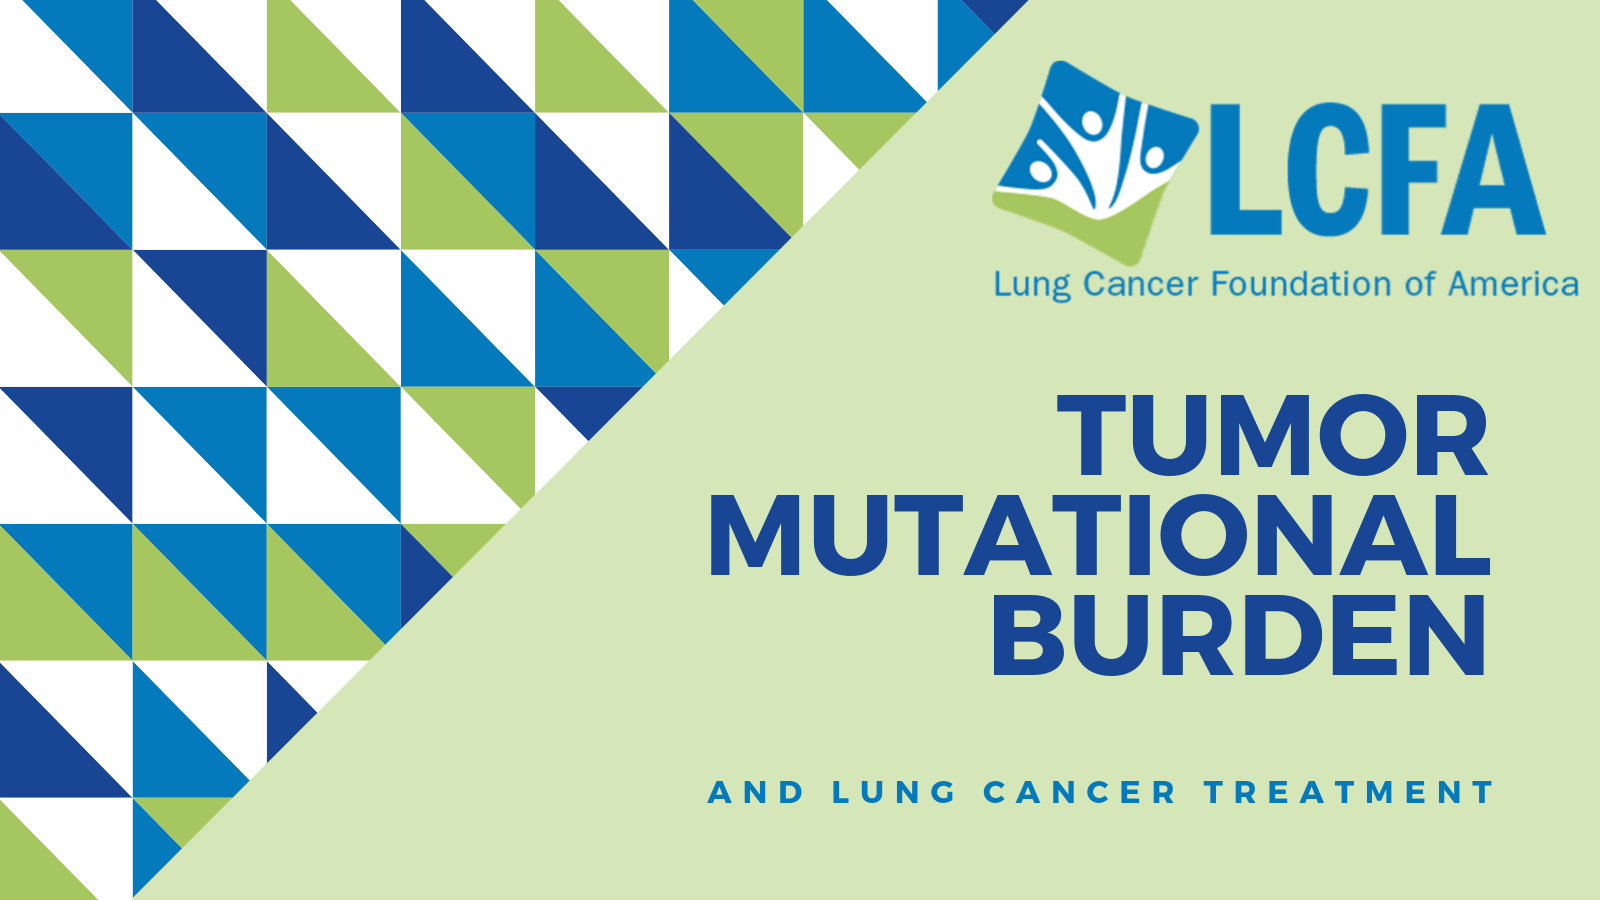 Tumor mutational burden and lung cancer treatment